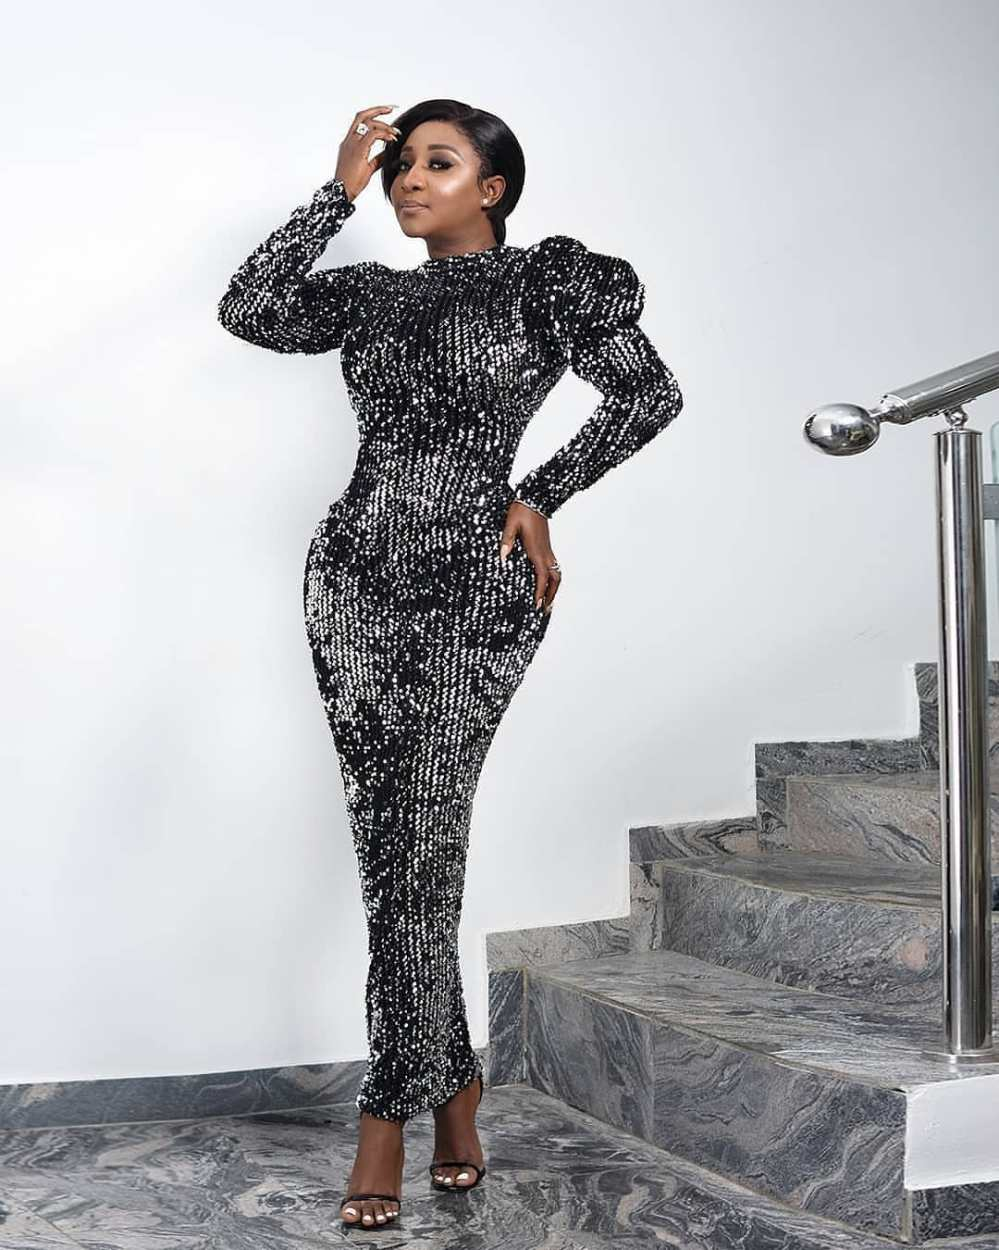 Ini-Edo-Photo-Desk-Gram